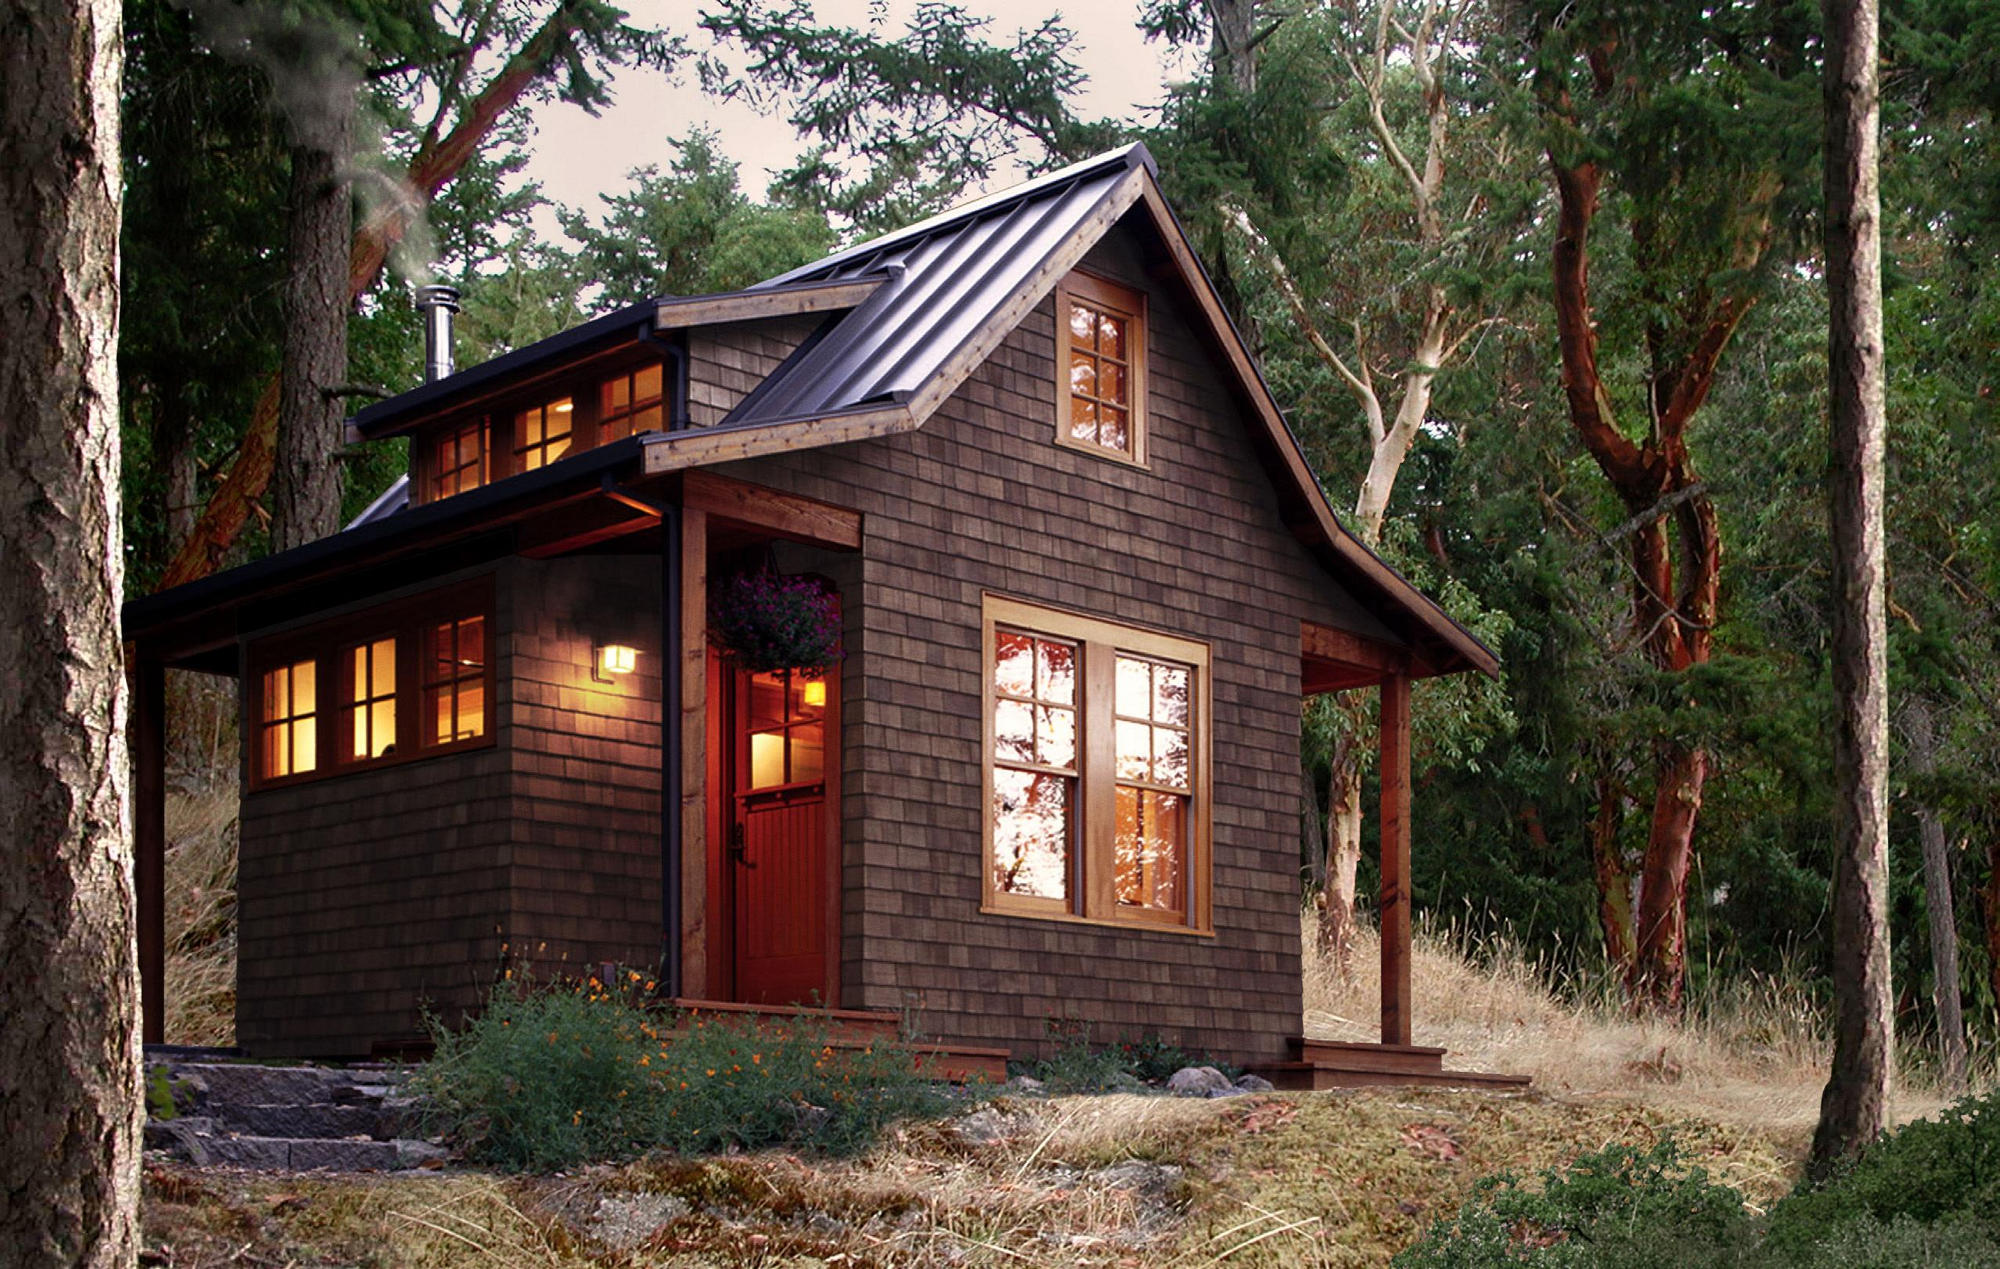 Charmant This Small Cabin In The Woods On Orcas Island Has A 350 Sq Ft Ground Floor